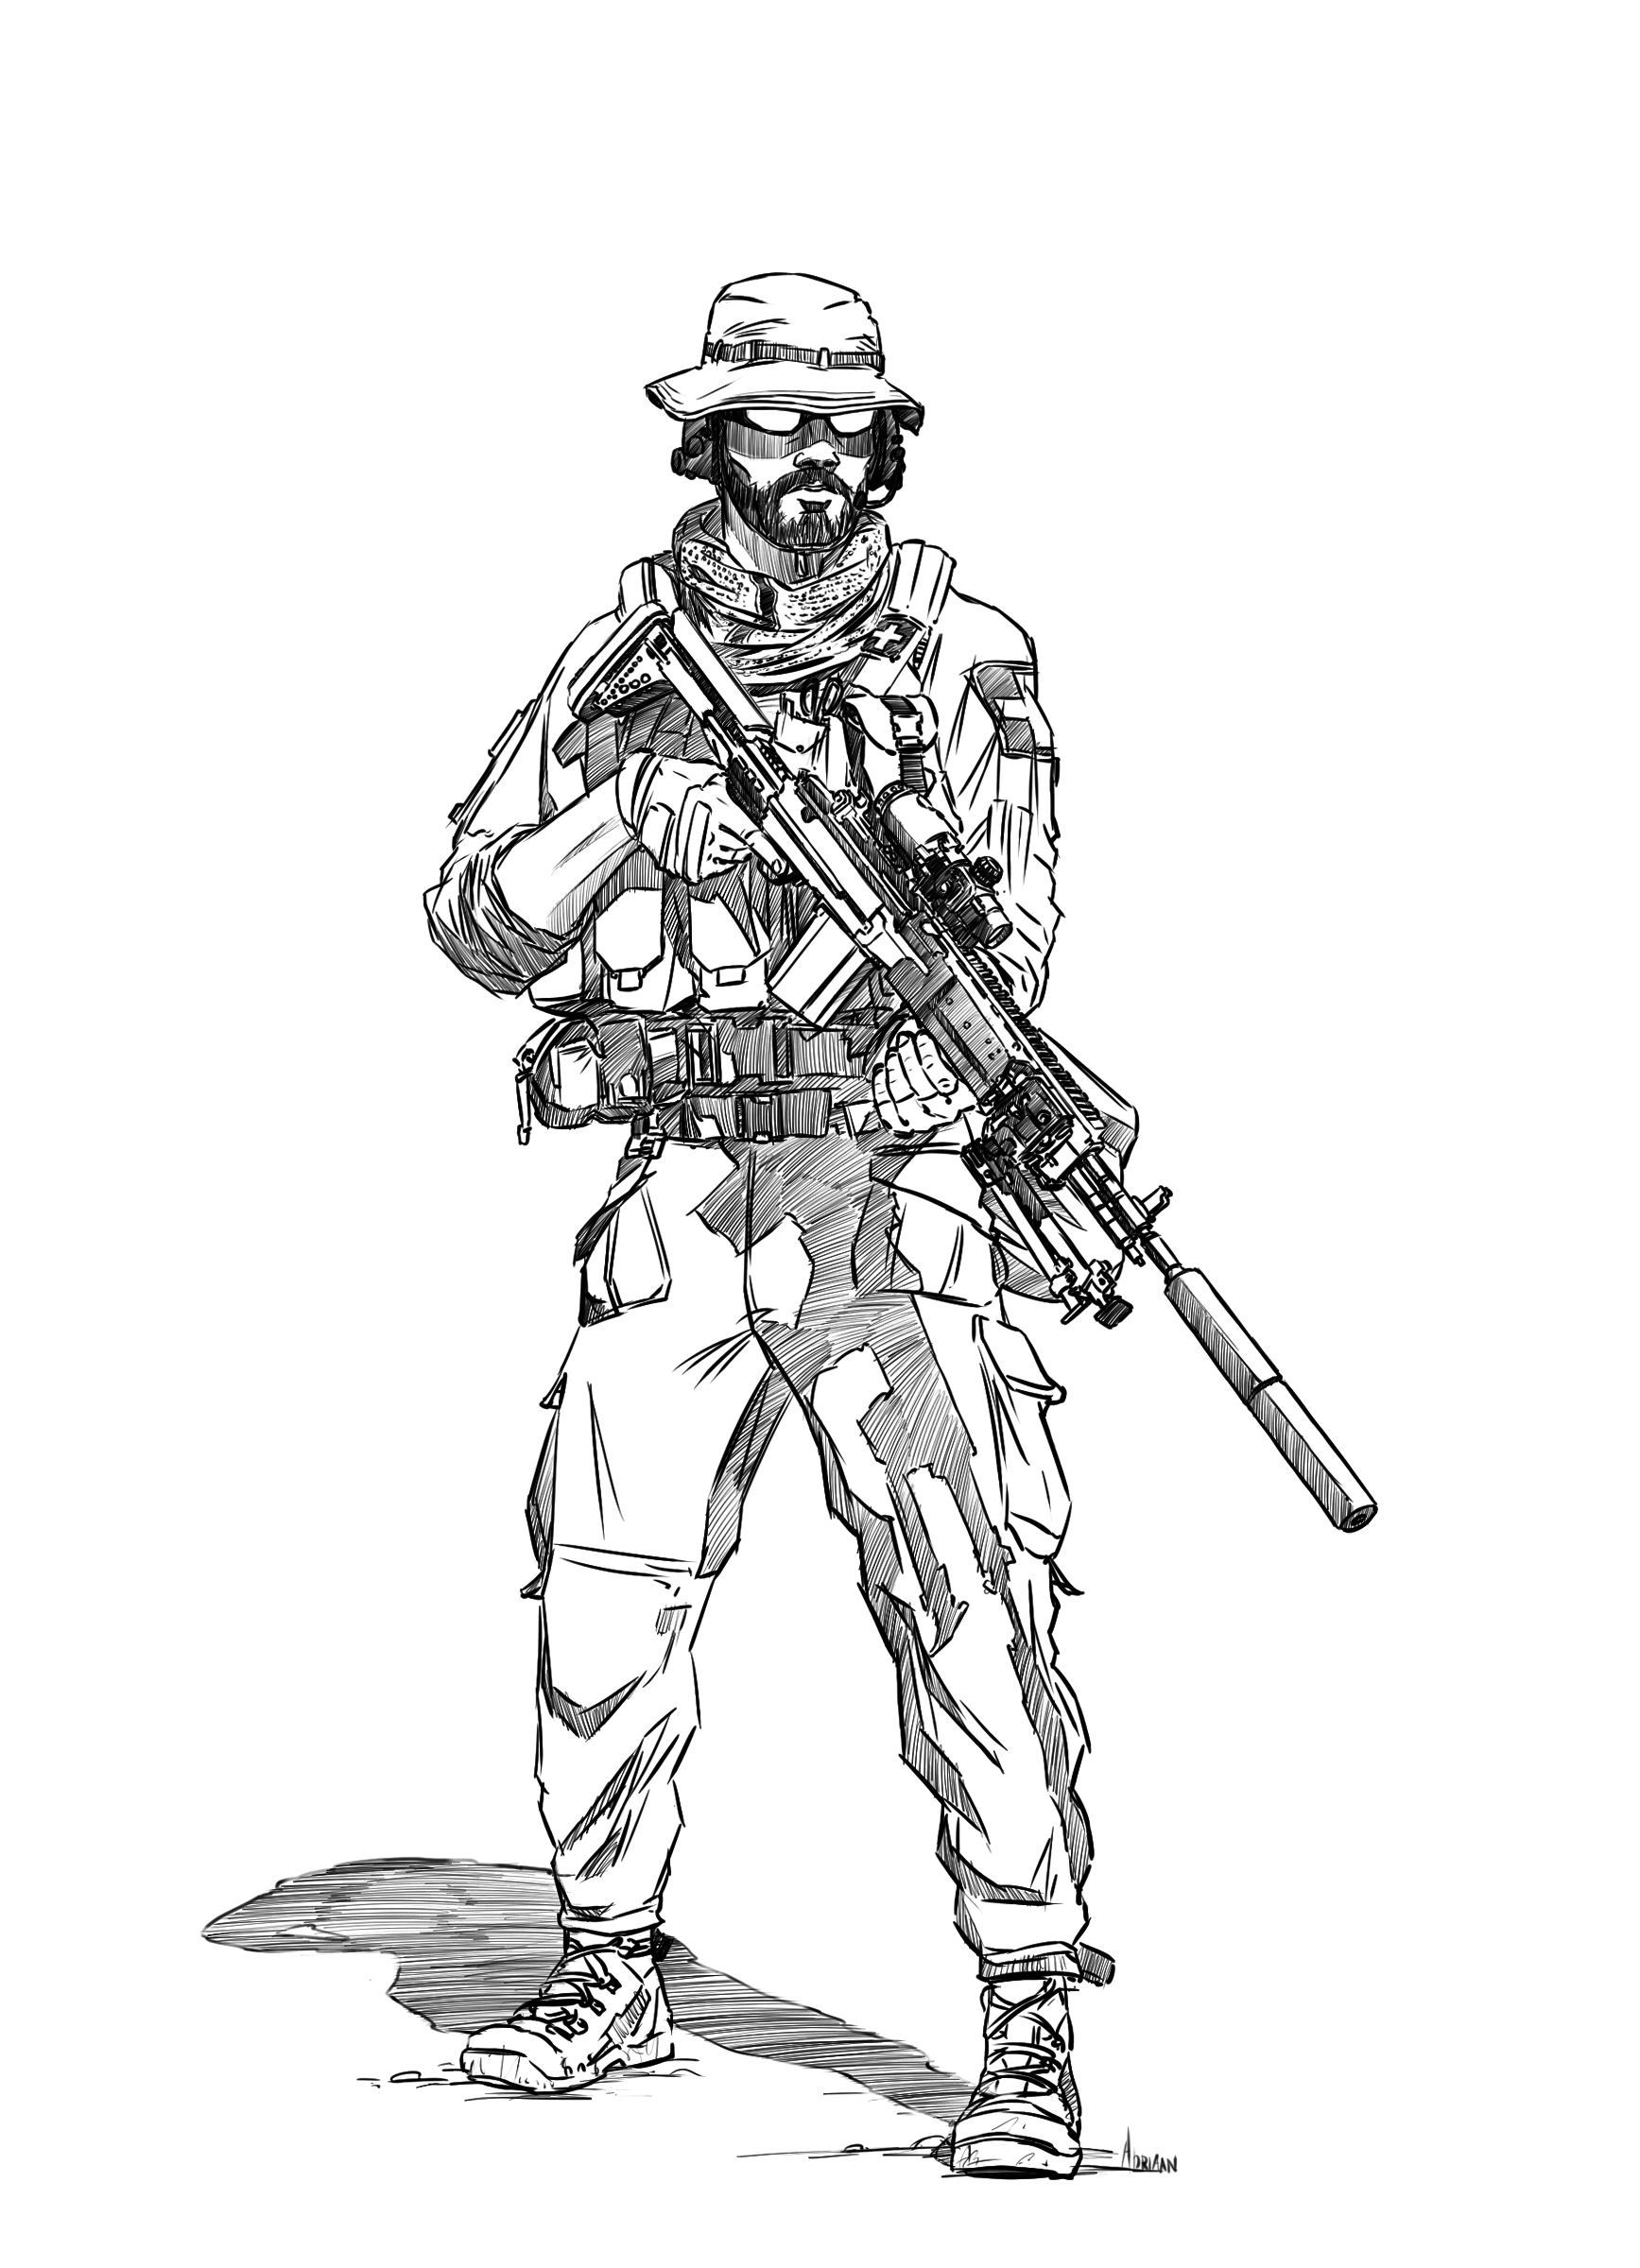 Medic with a mk14 dmr i drew for a commission [1735x2400]